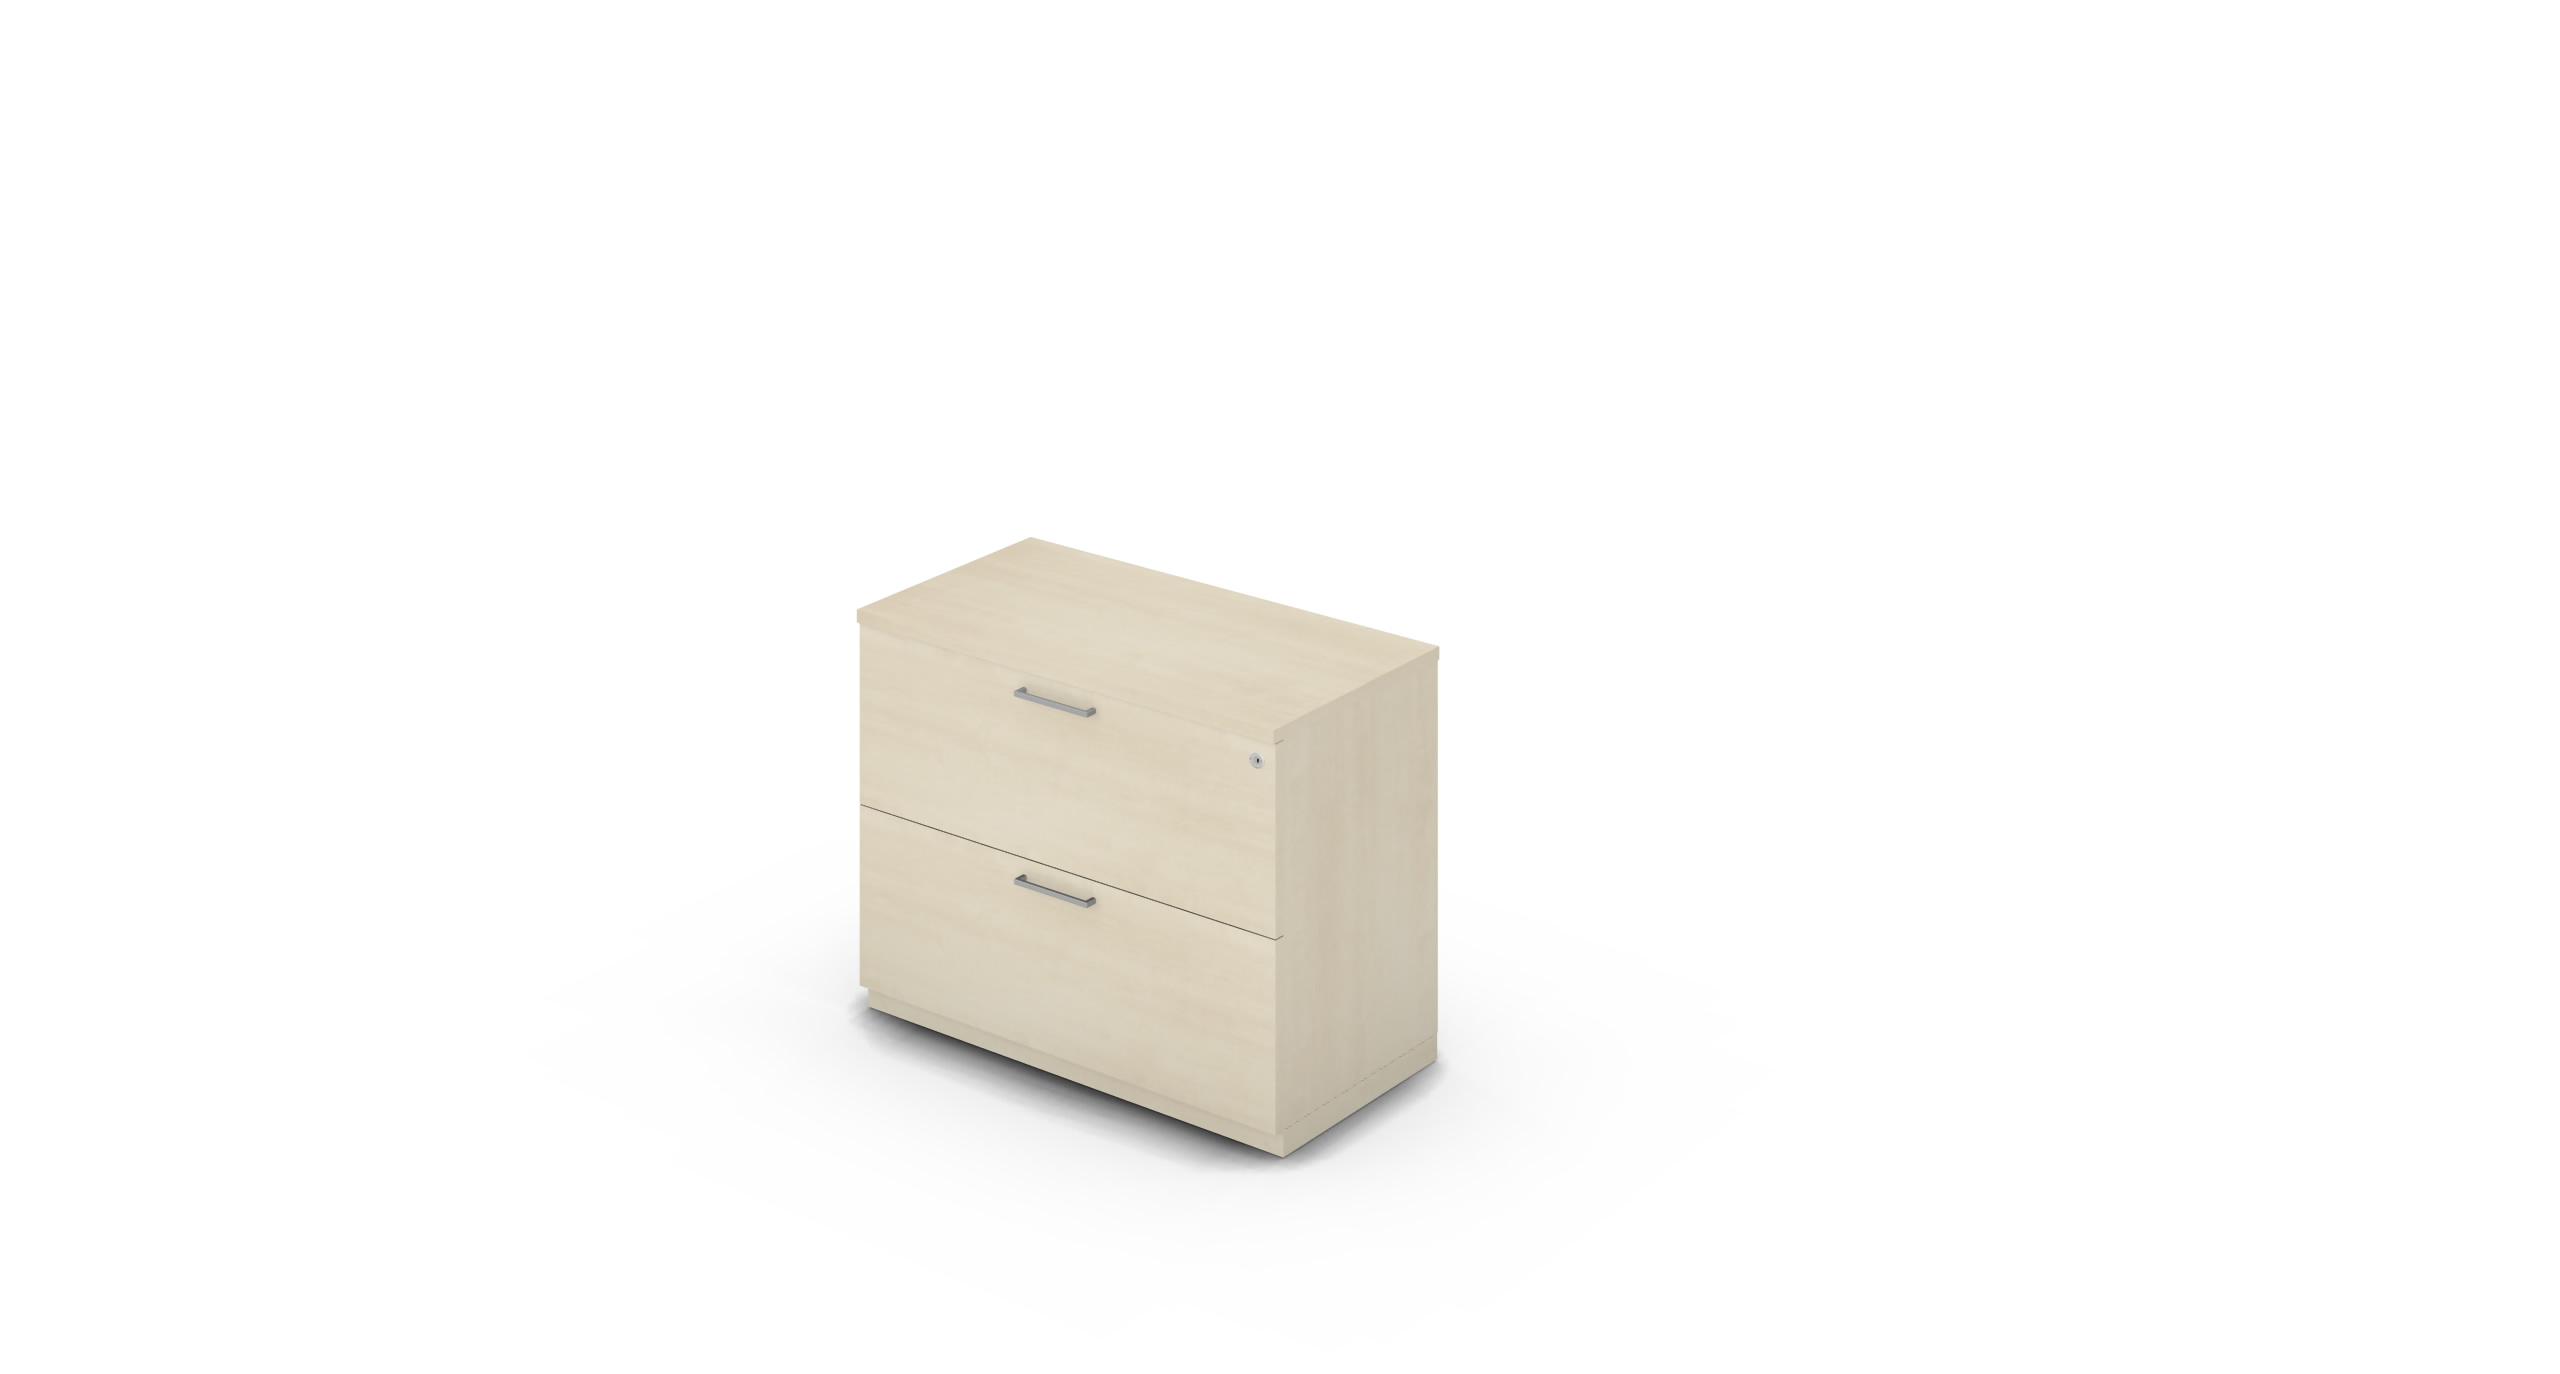 Cabinet_900x450x775_DR_Maple_Bar_Square_WithCylinder